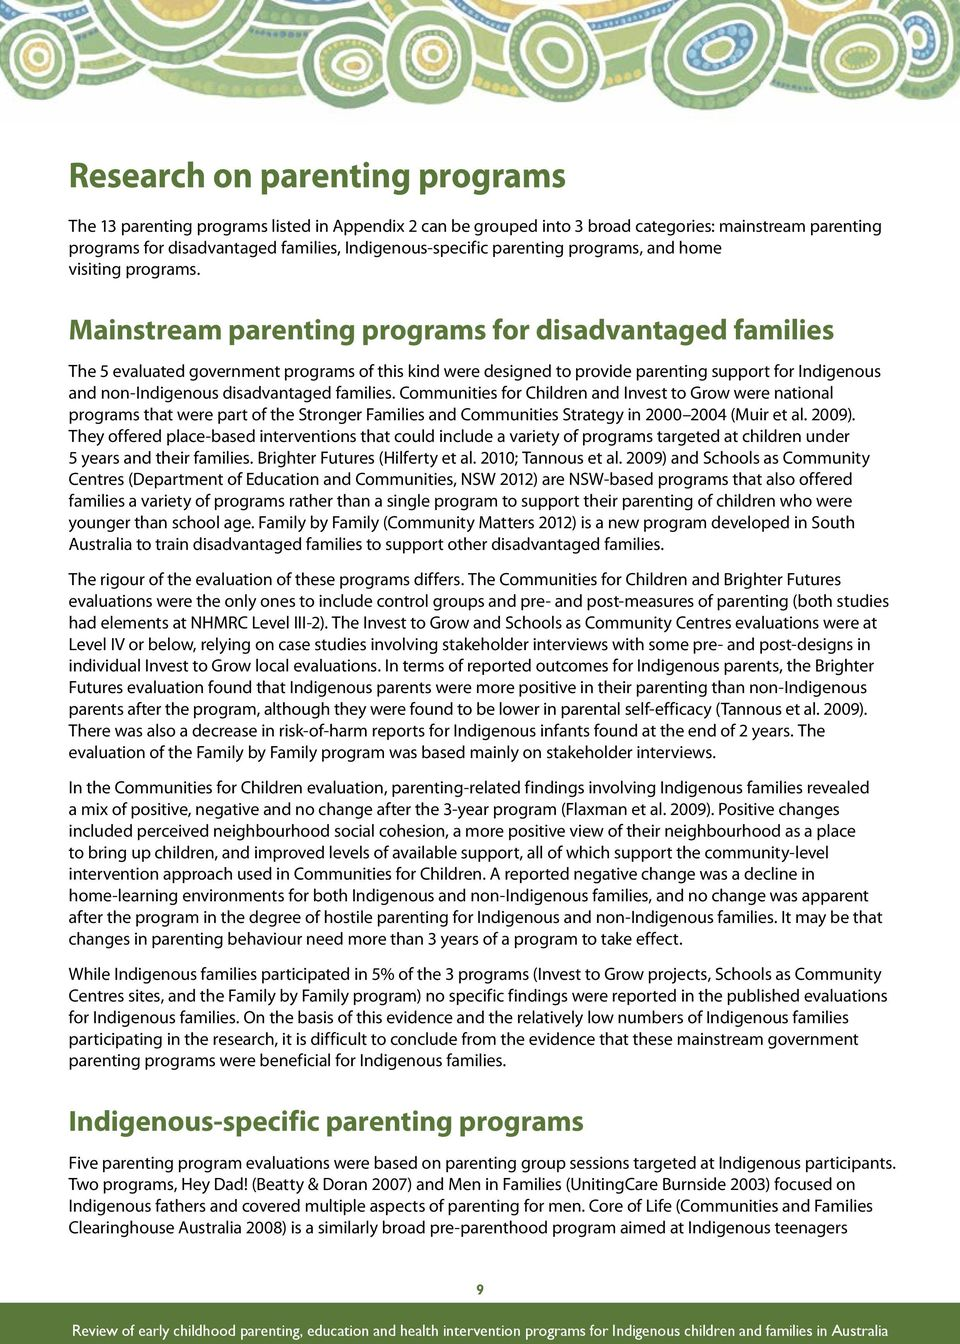 Mainstream parenting programs for disadvantaged families The 5 evaluated government programs of this kind were designed to provide parenting support for Indigenous and non-indigenous disadvantaged